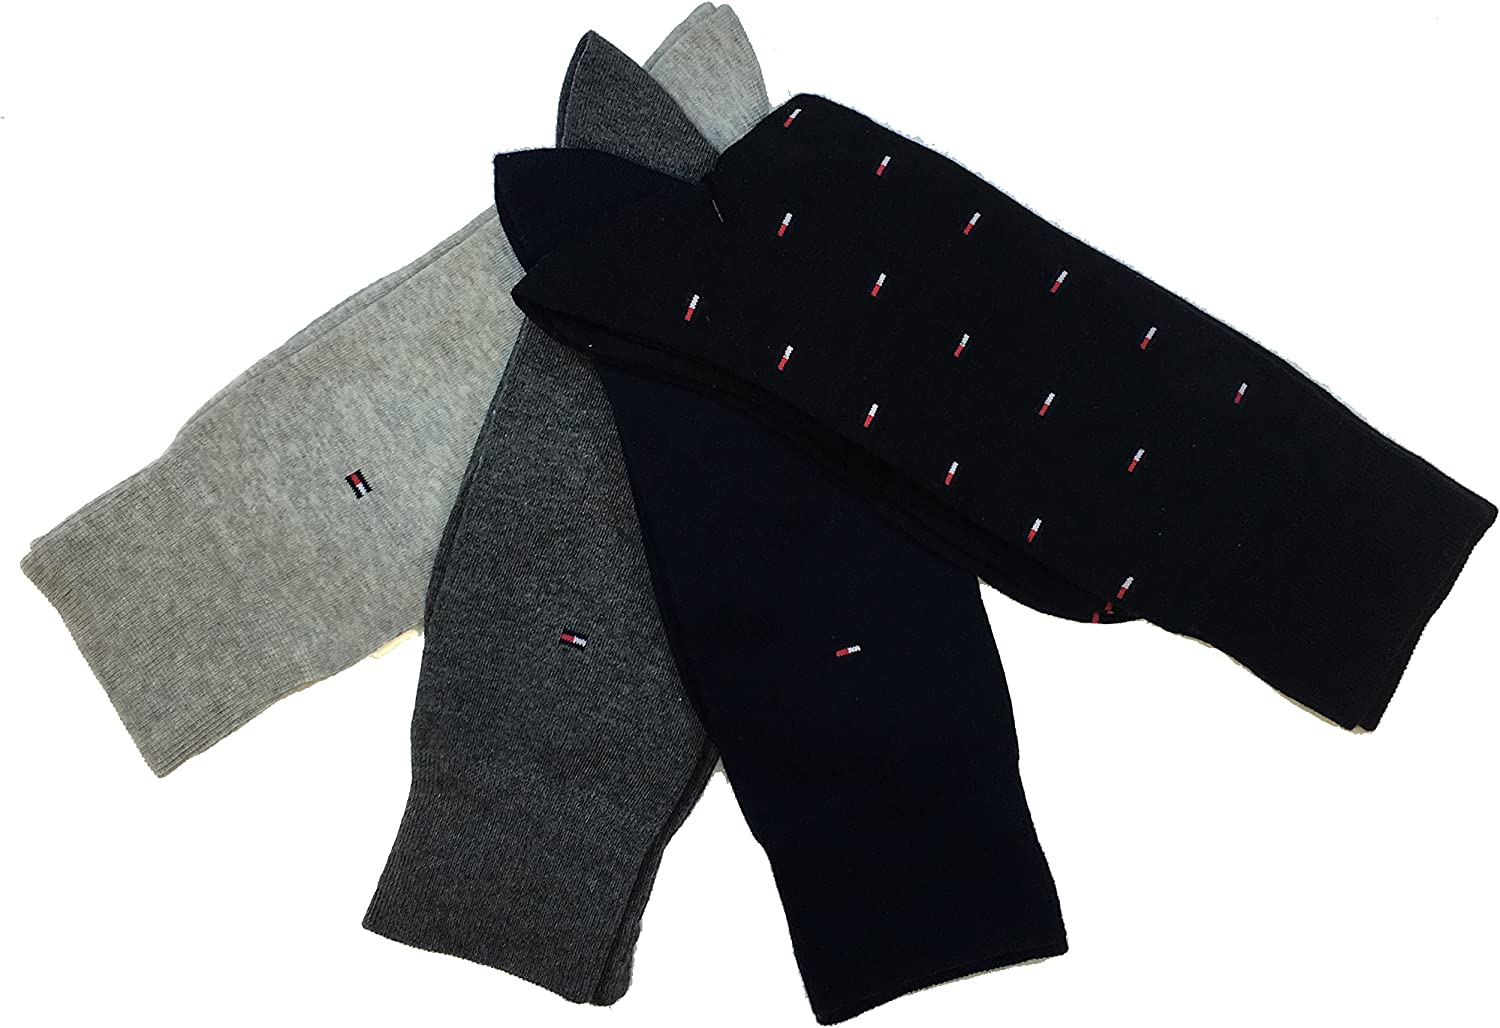 Tommy Hilfiger 4 Pair Full Cushion Comfort Men's Casual Day Dress Socks